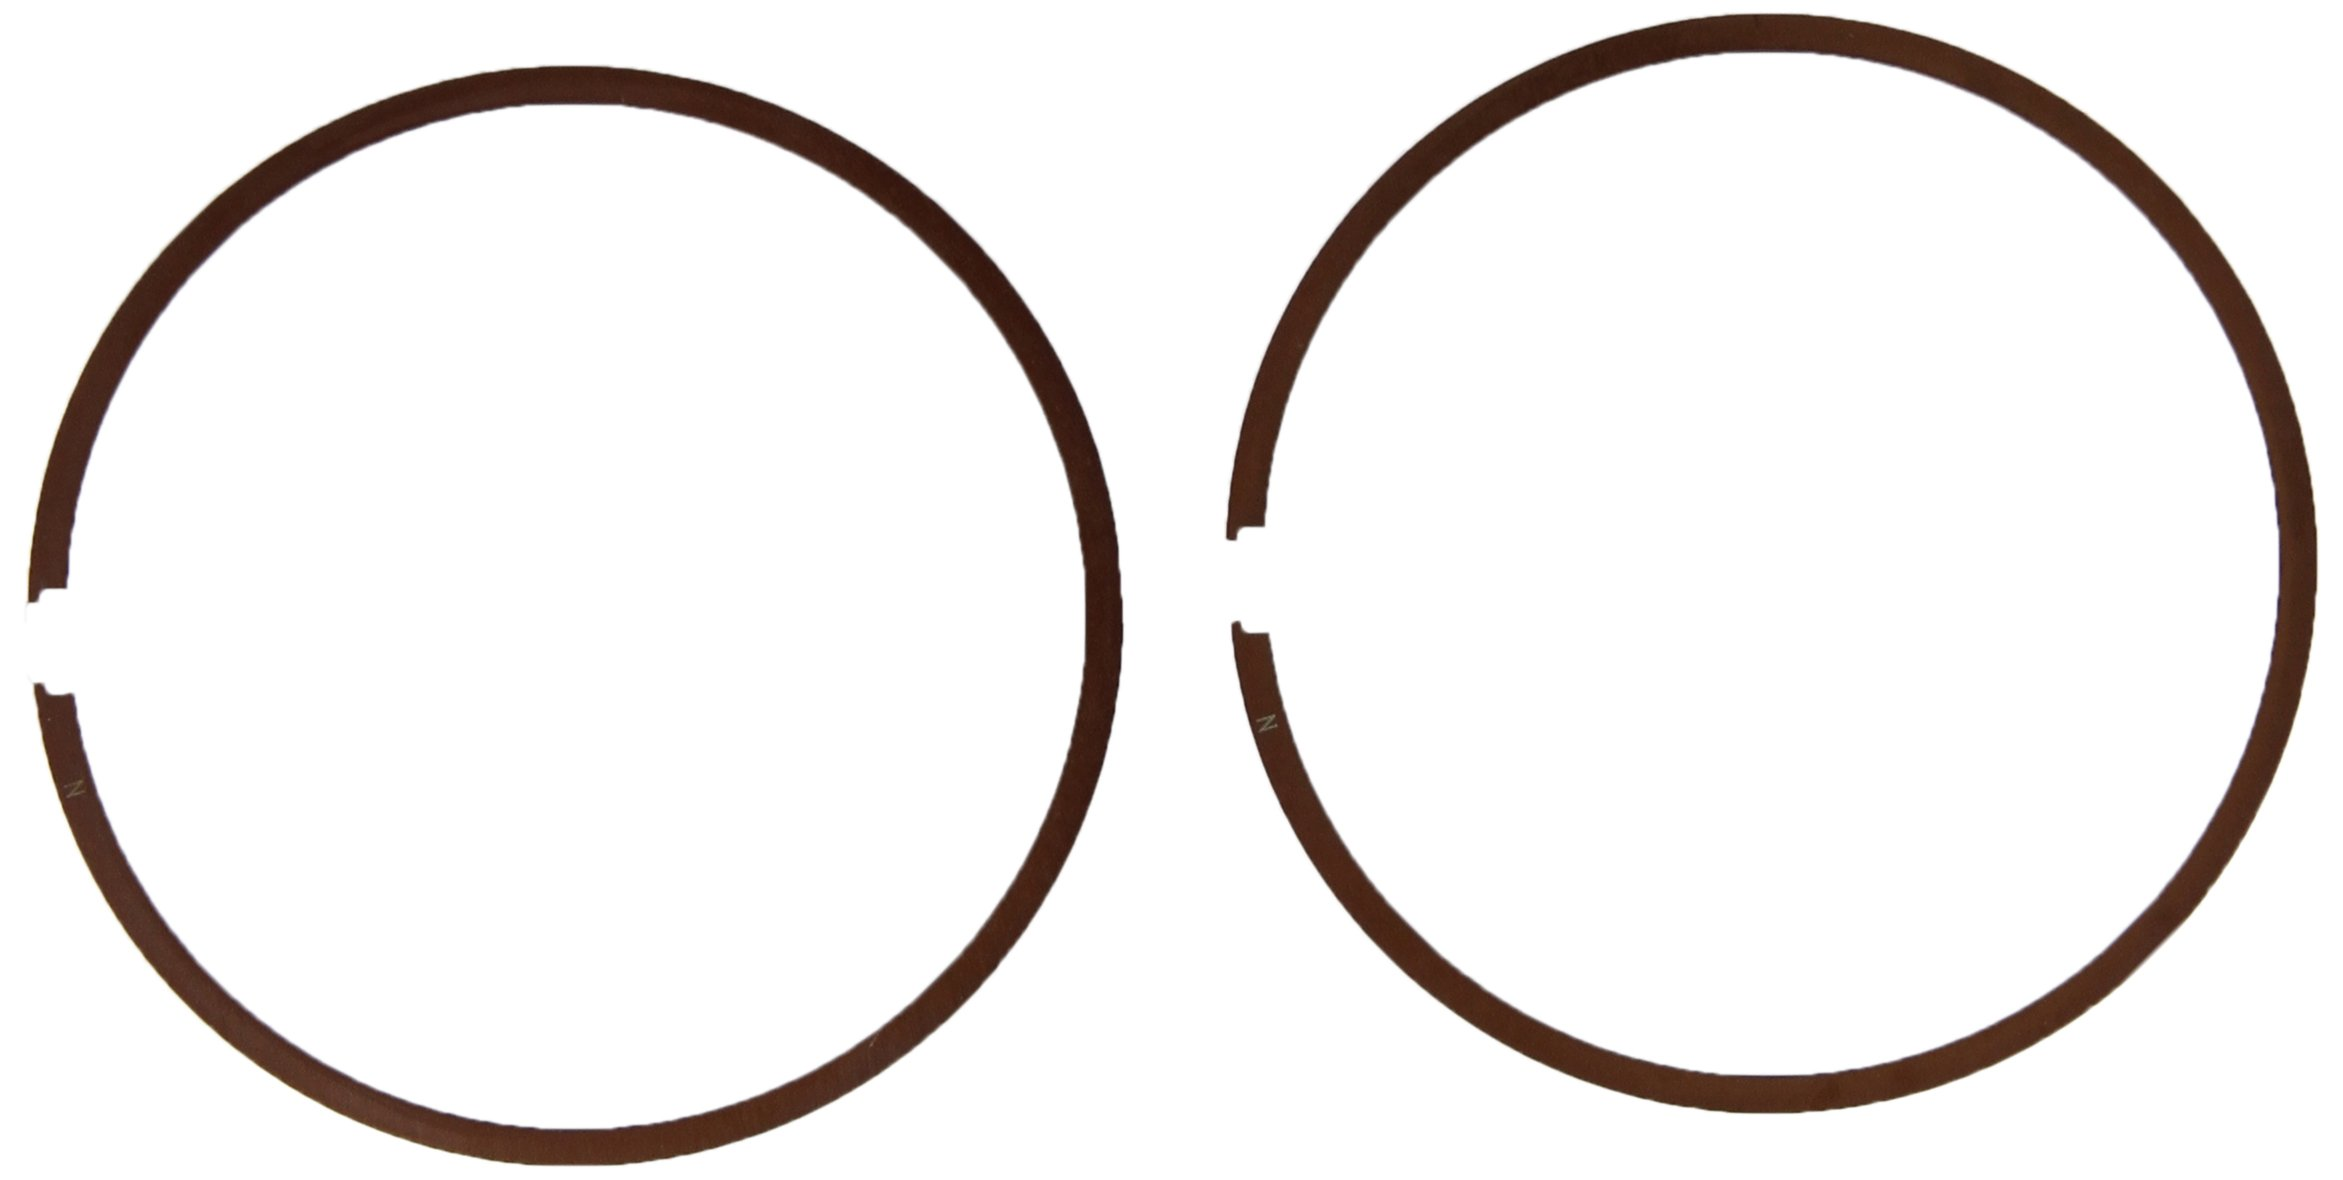 Wiseco 2756CD Ring Set for 70.00mm Cylinder Bore